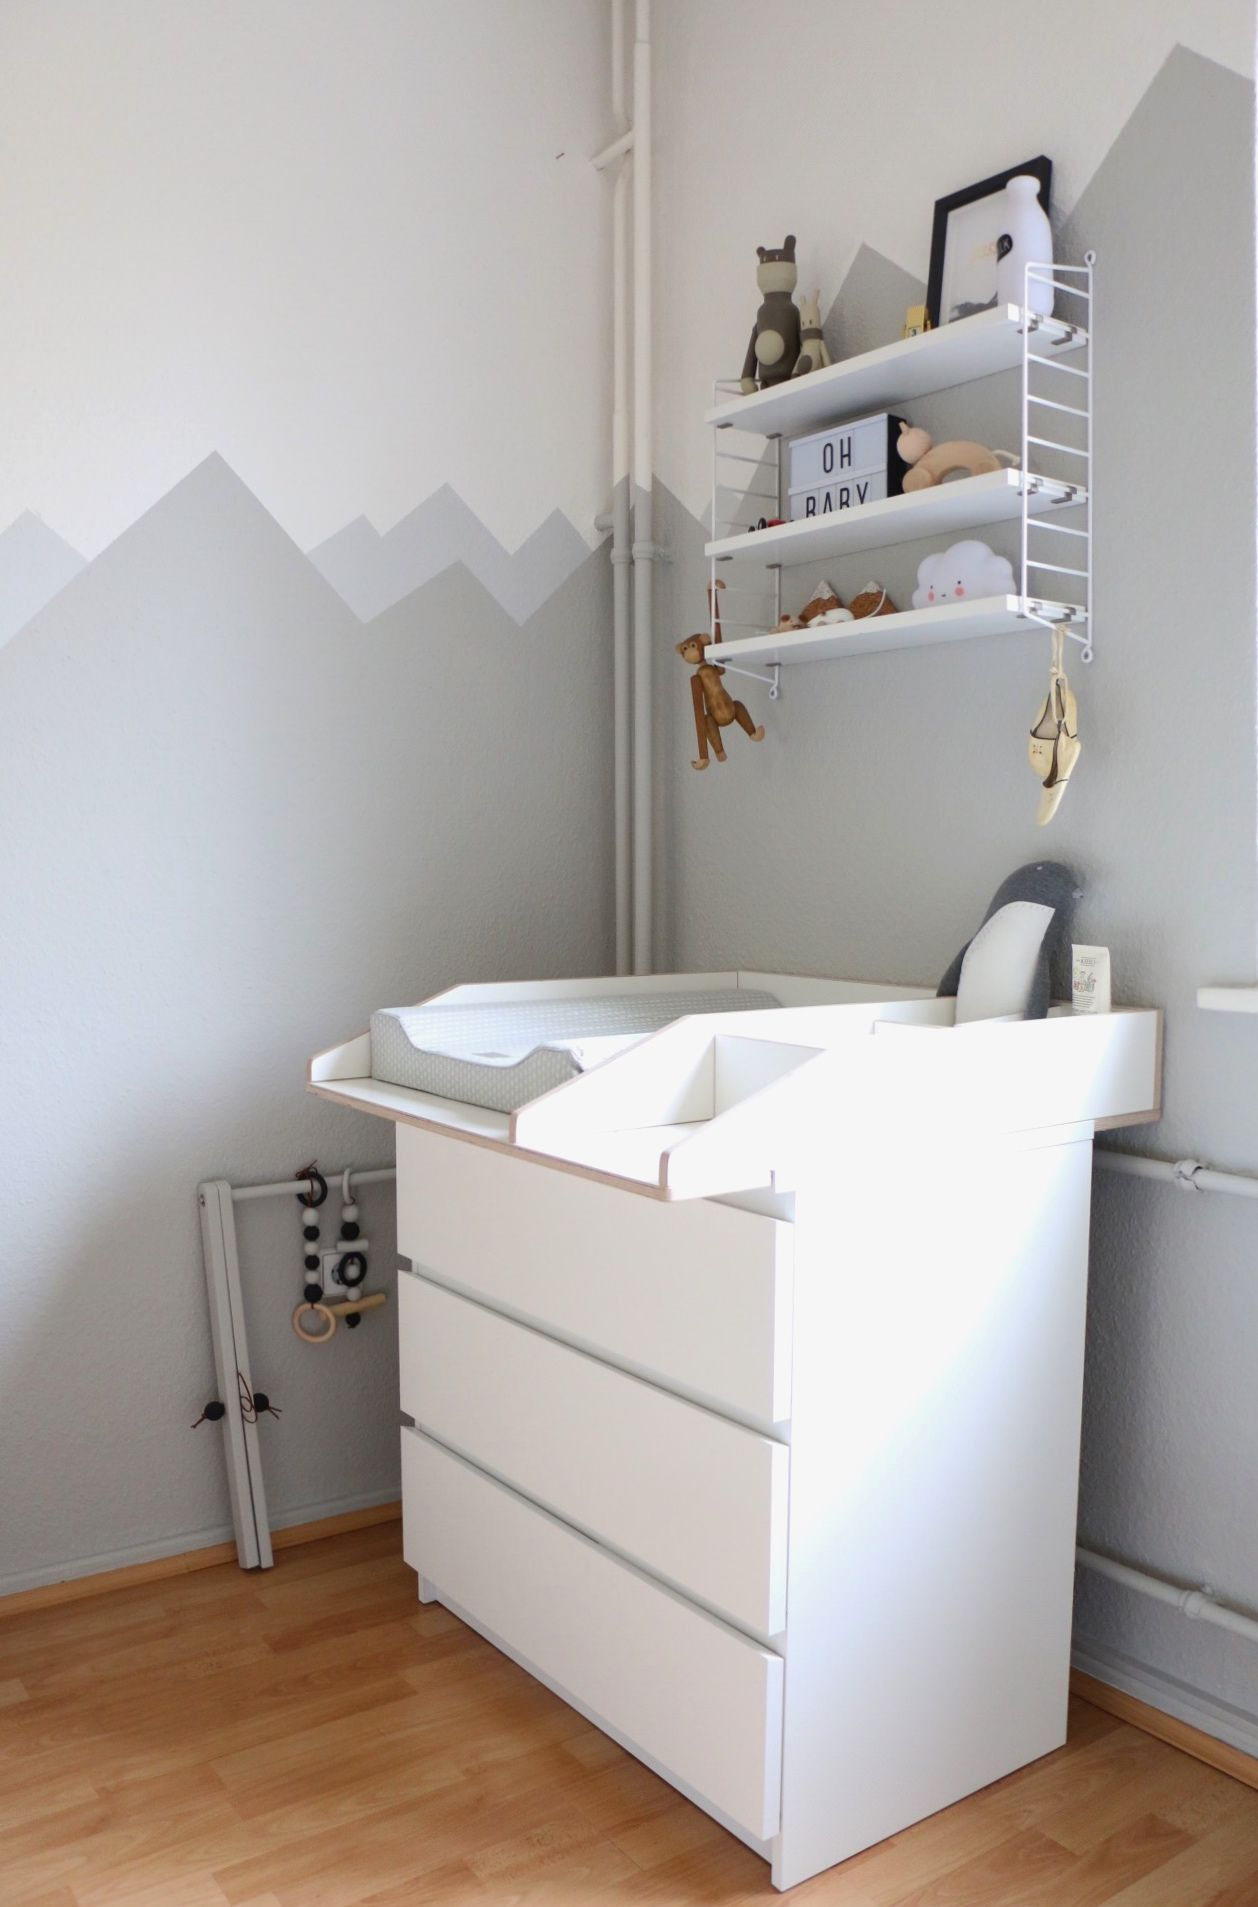 Mountain Nursery Wallpaint Wandgestaltung im Babyzimmer